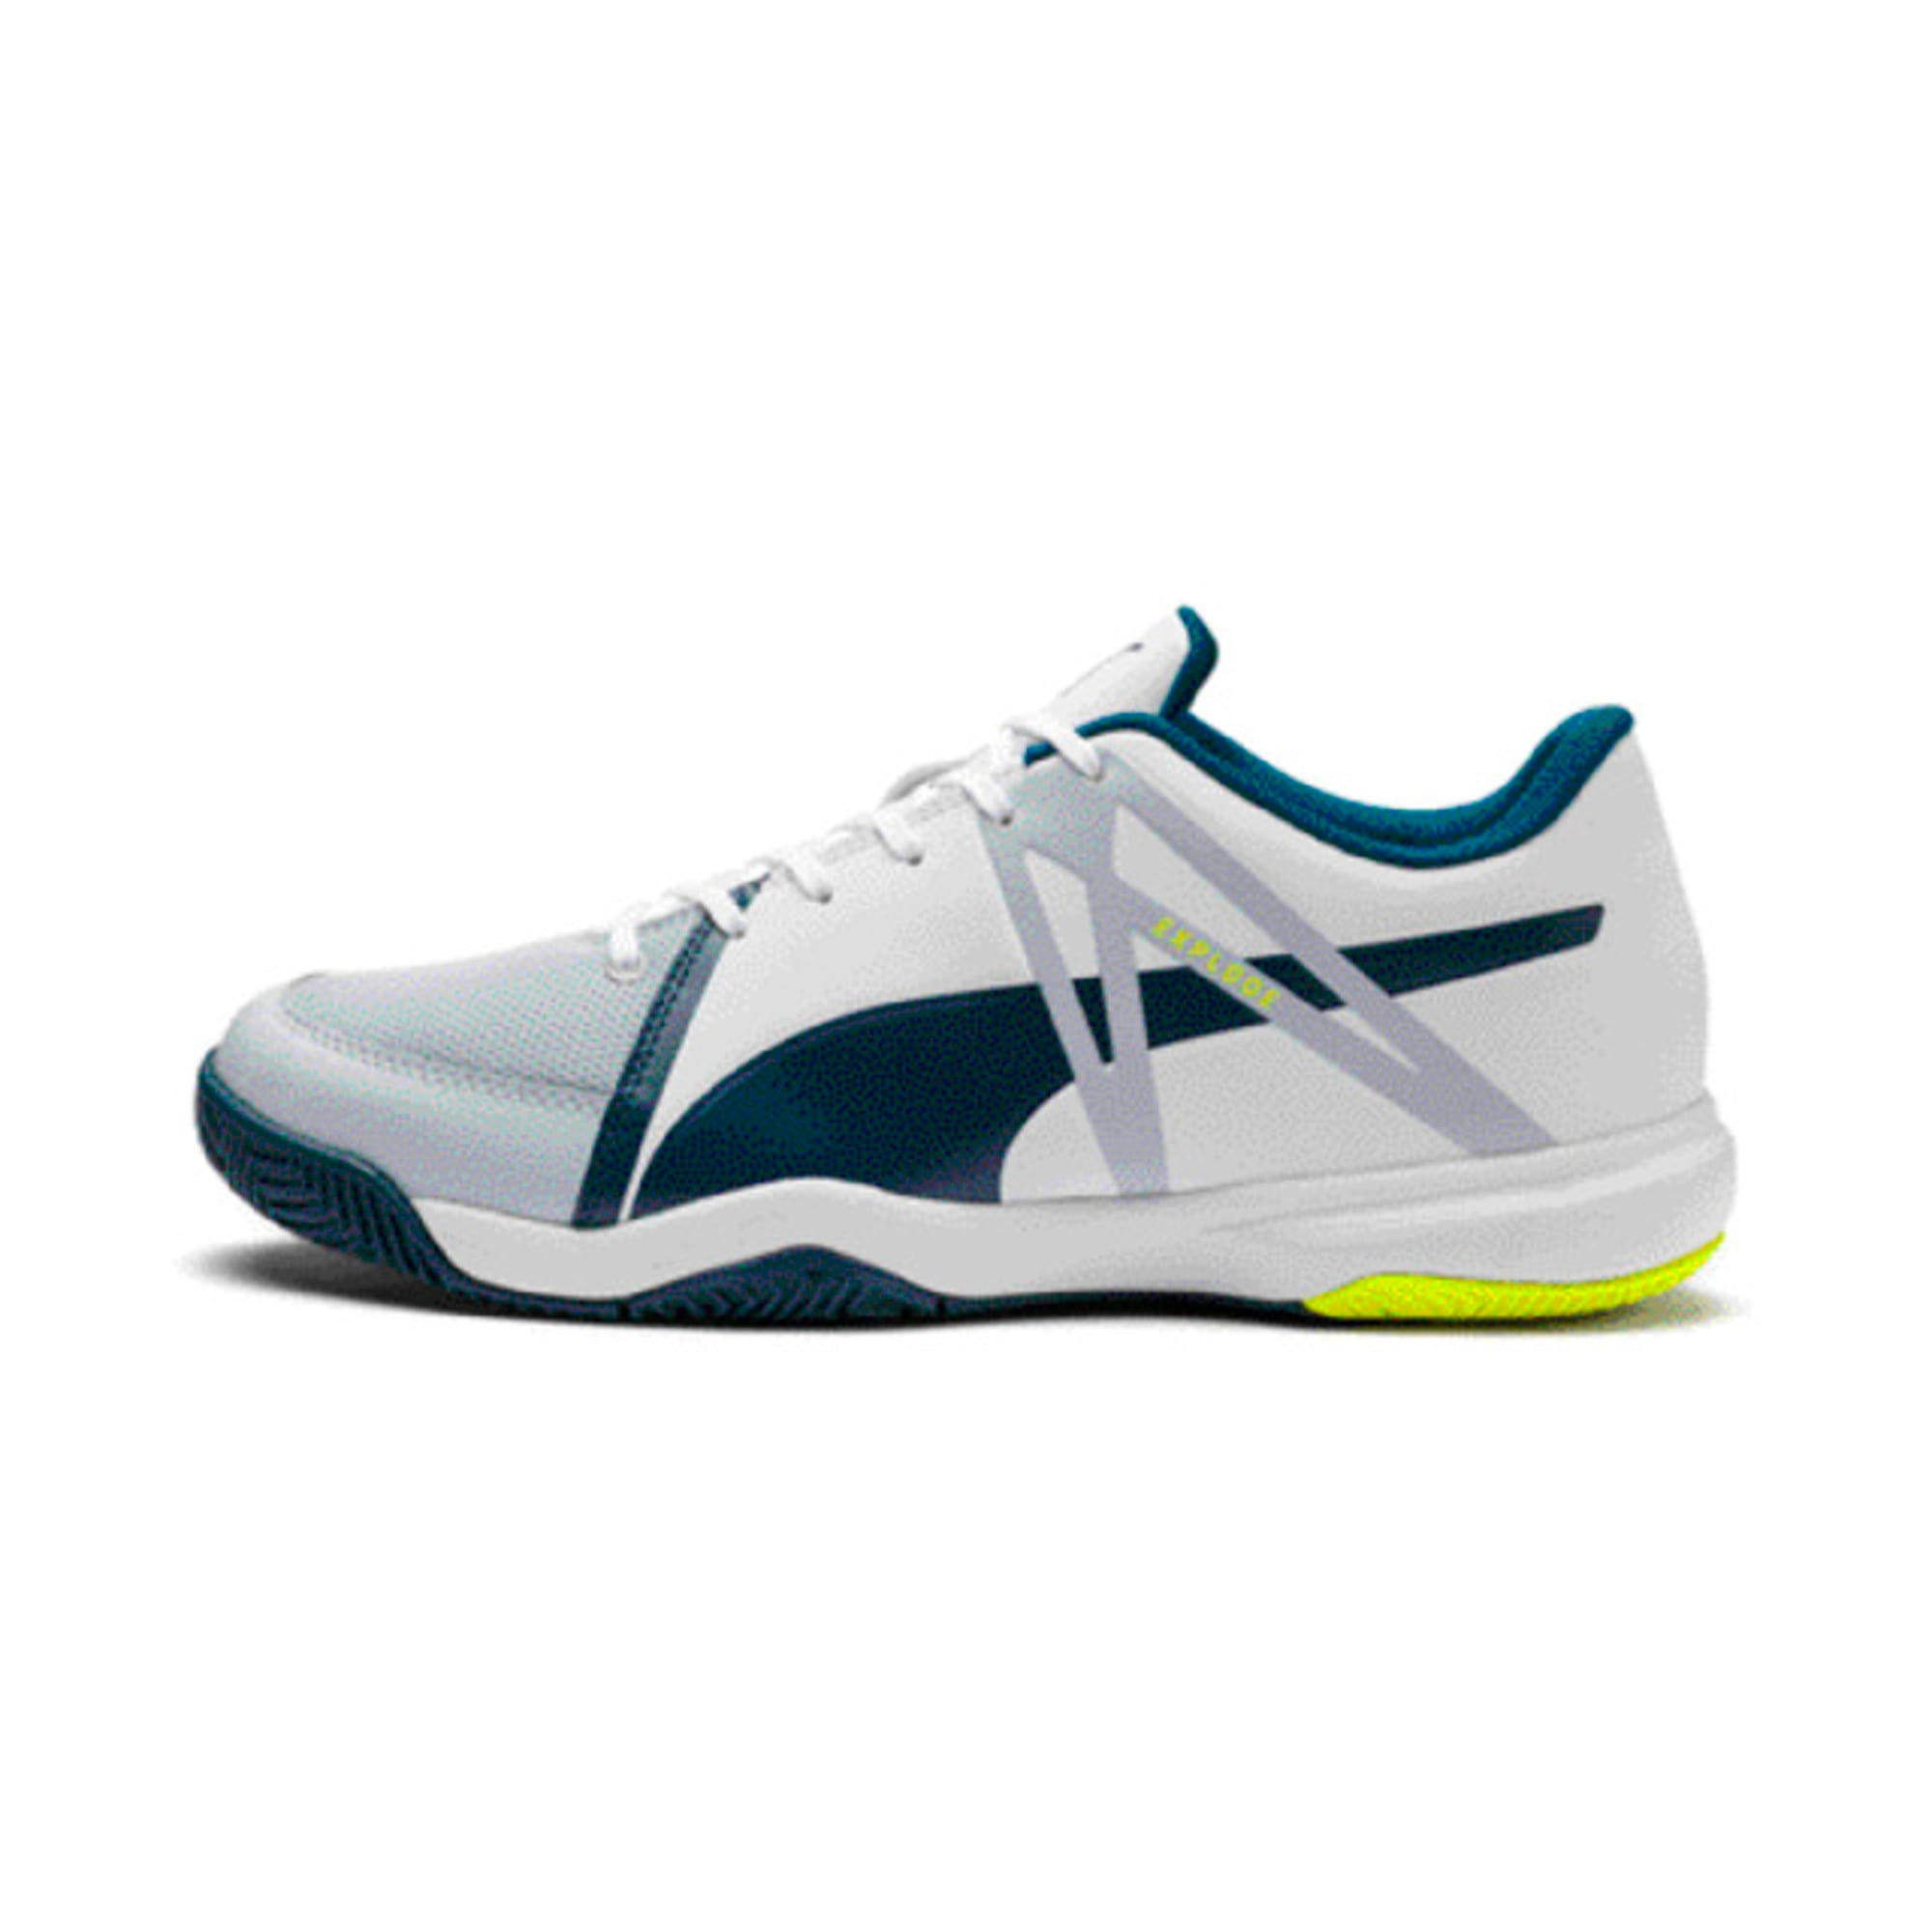 Thumbnail 1 of Explode XT 3 Men's Indoor Sports Performance Trainers, White-Grey-Yellow-Gibraltar, medium-IND